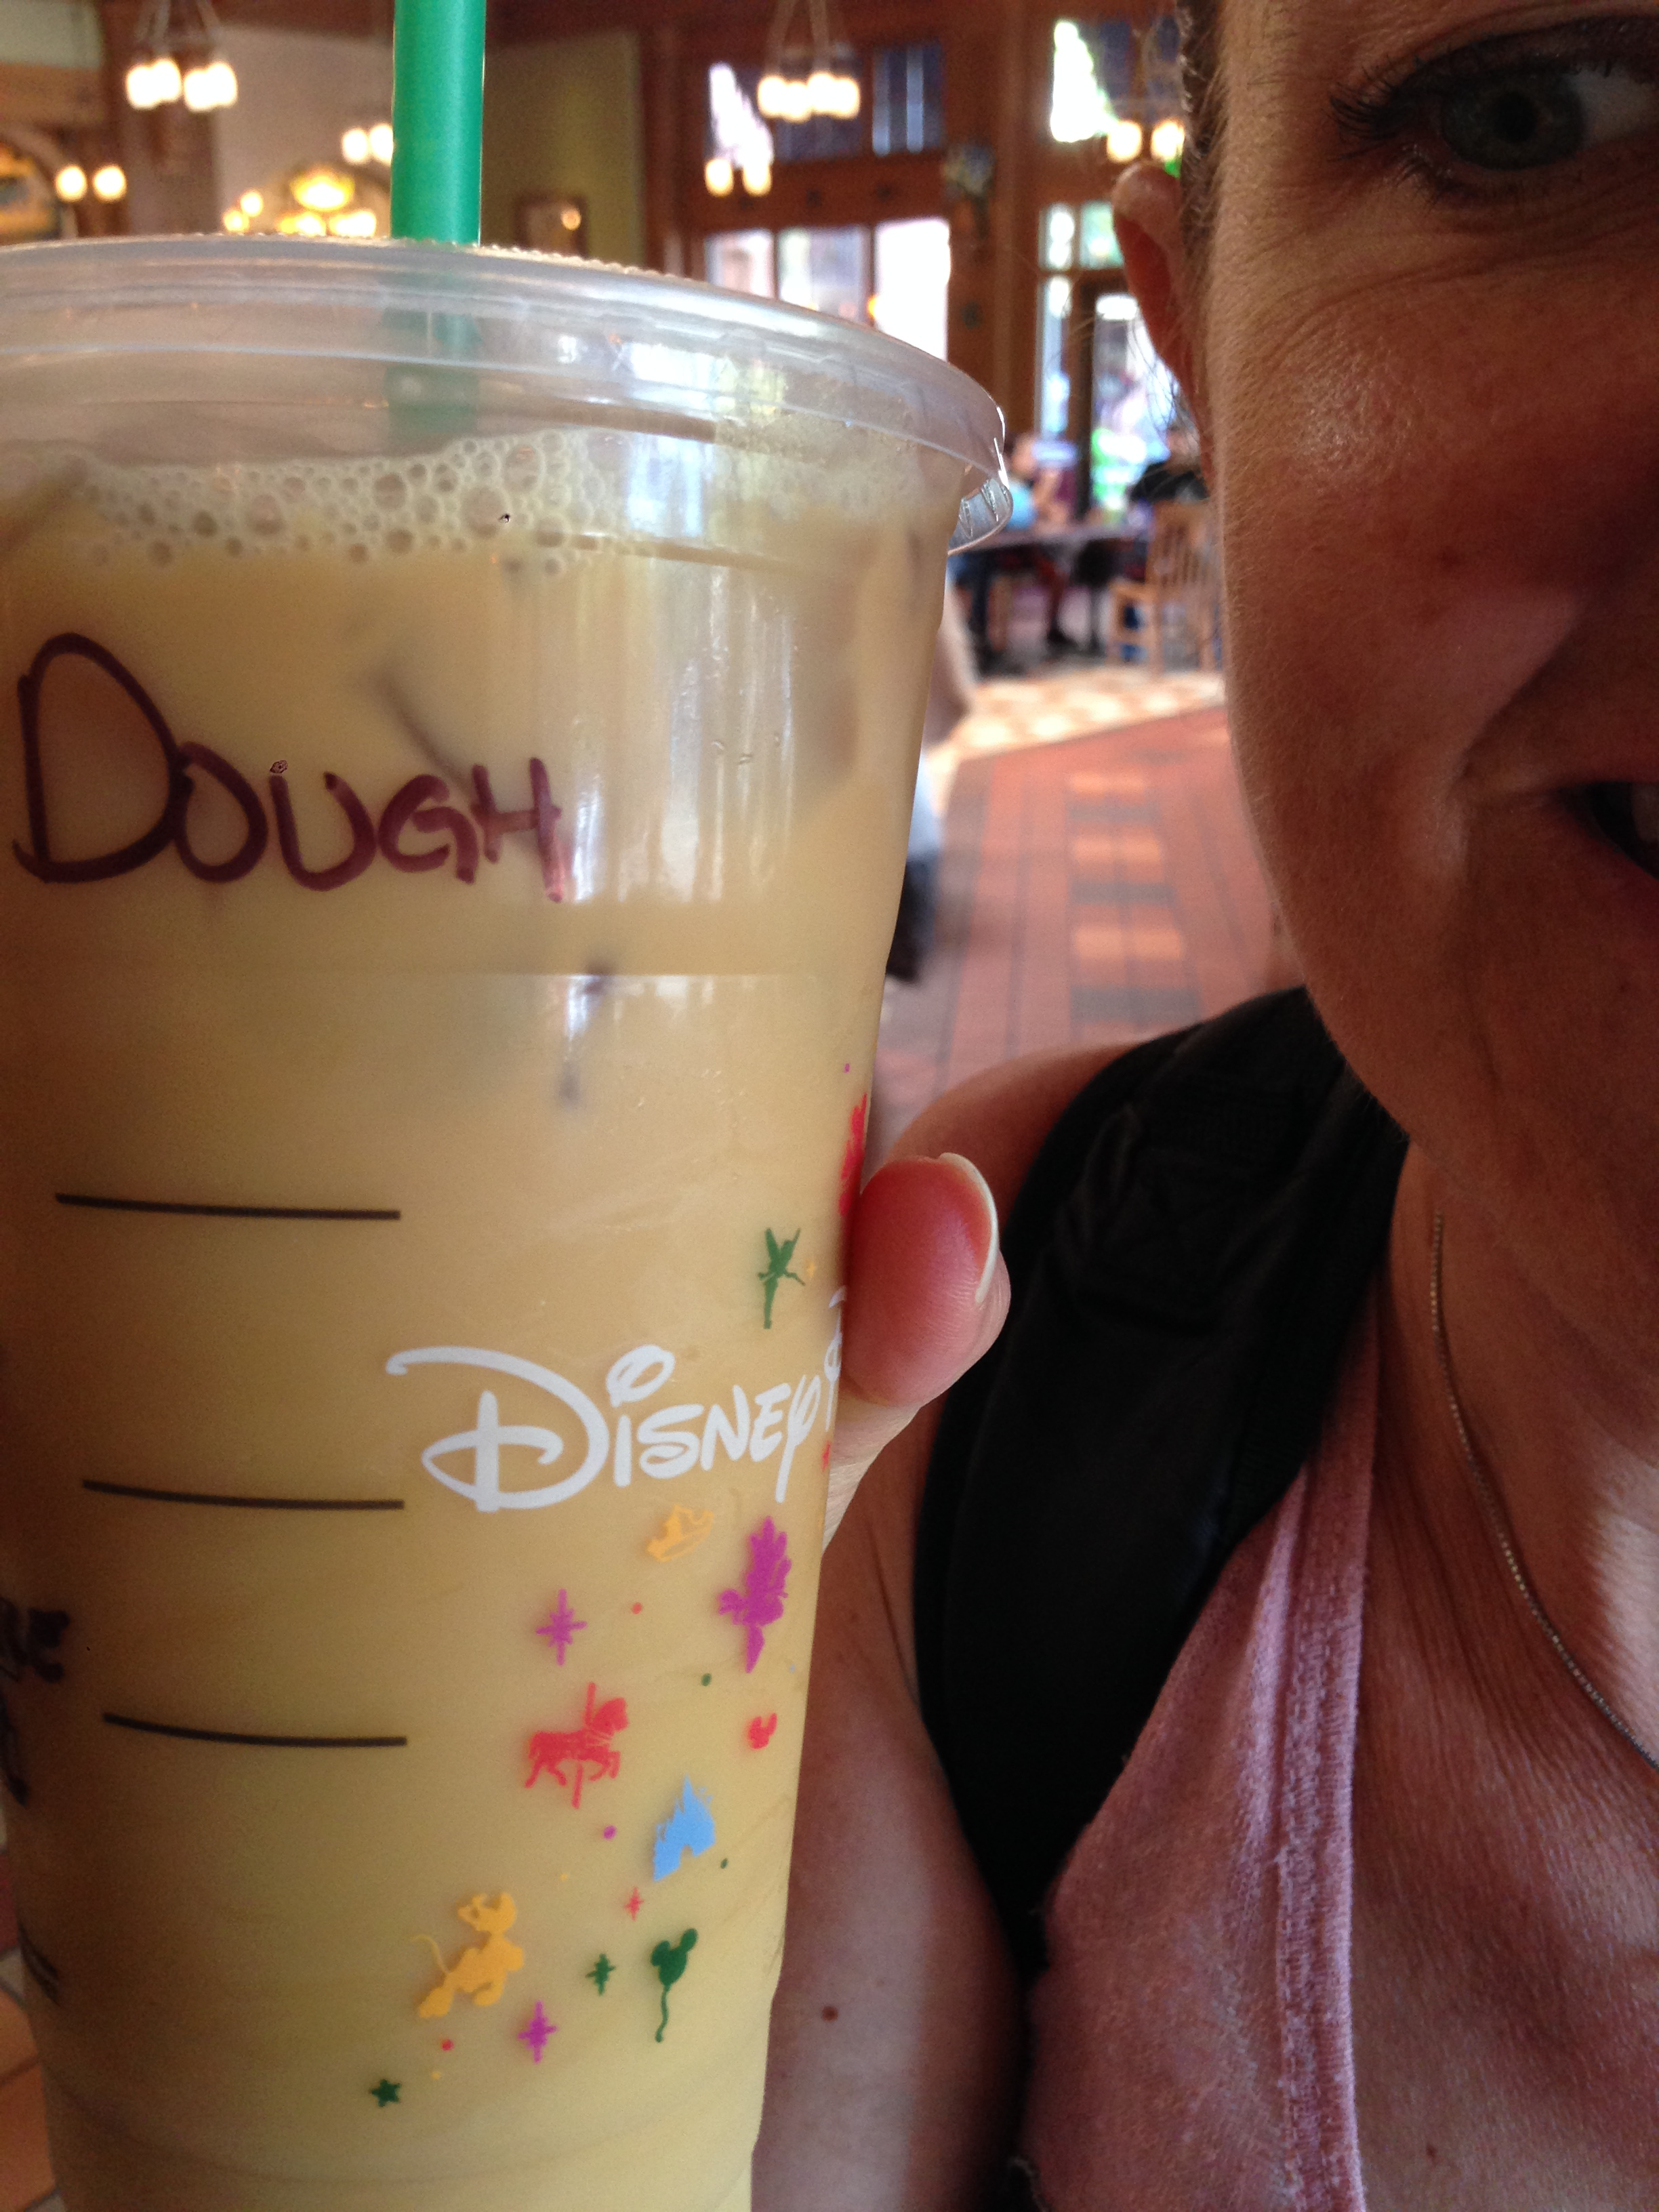 There is a Starbucks in both Disneyland and California Adventure!!!